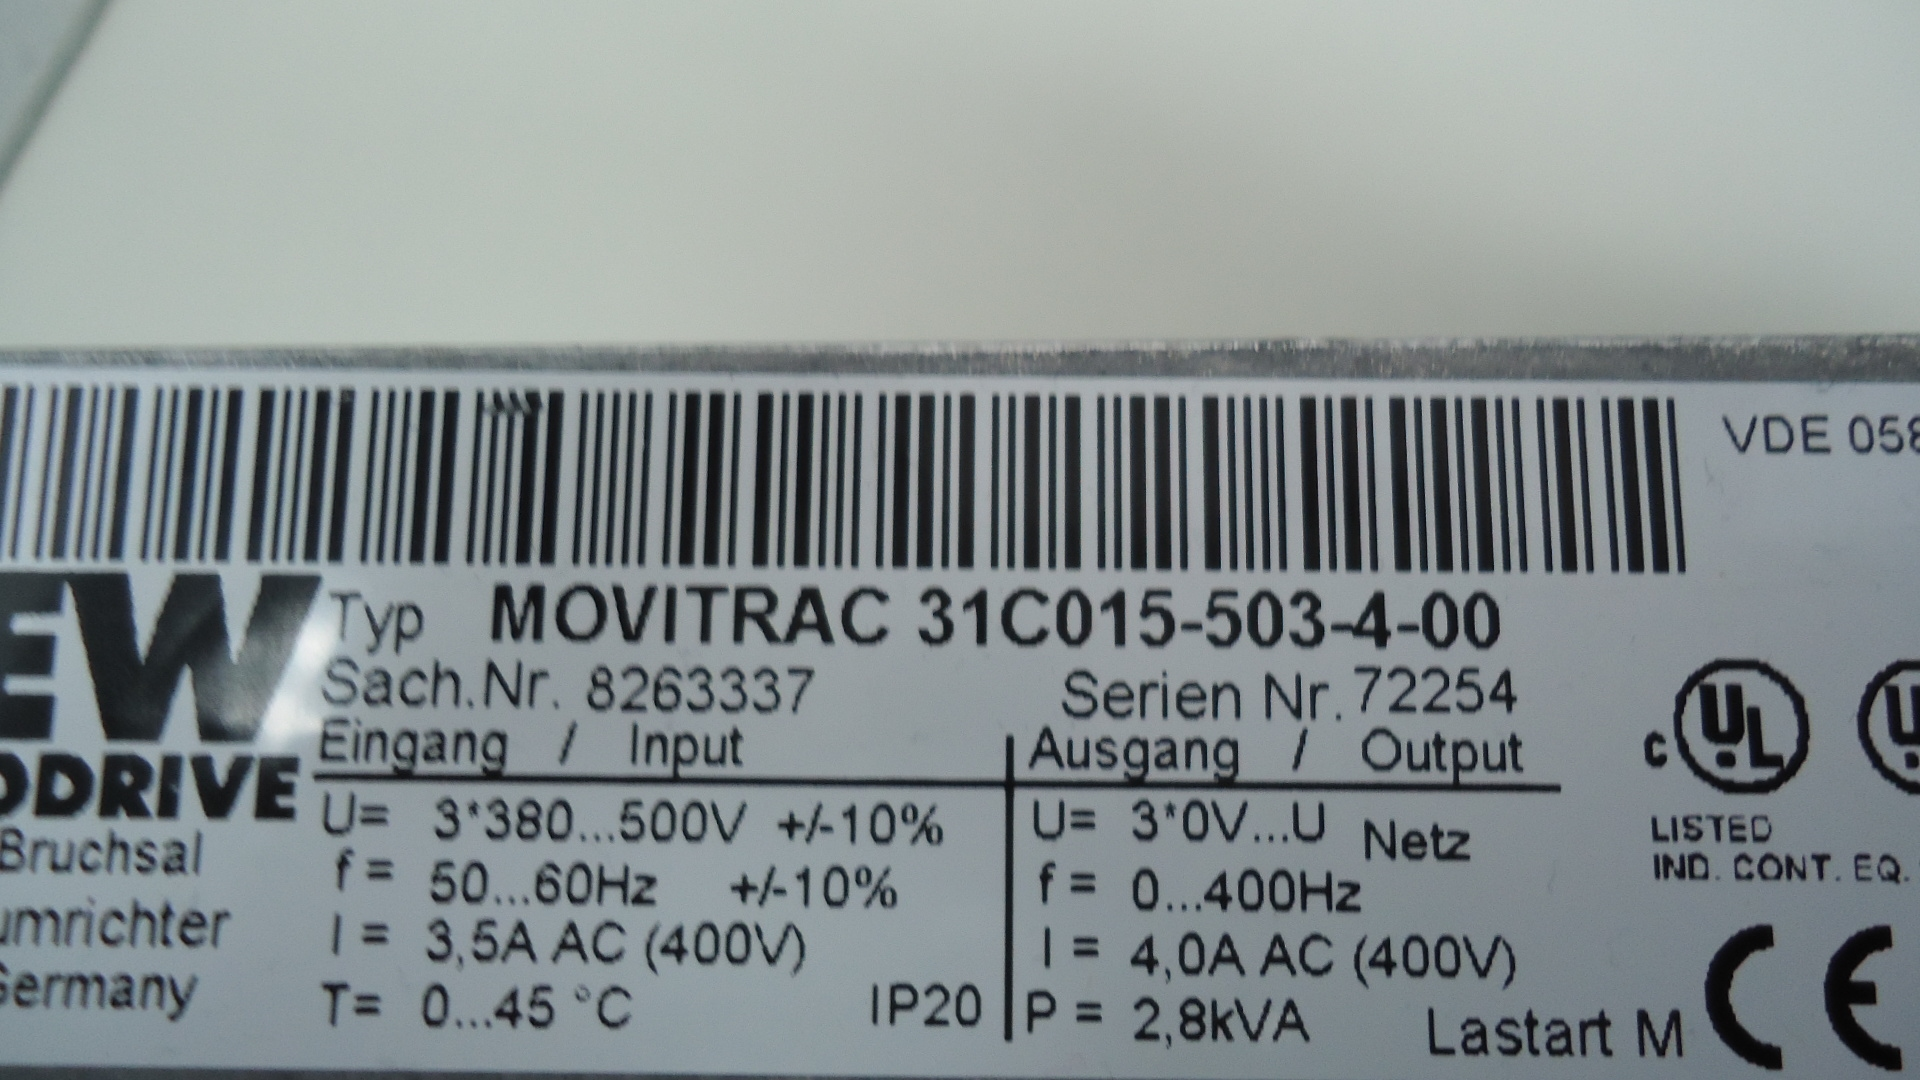 MC31C-015-503-4-00 SEW movitrac sachnr8263337